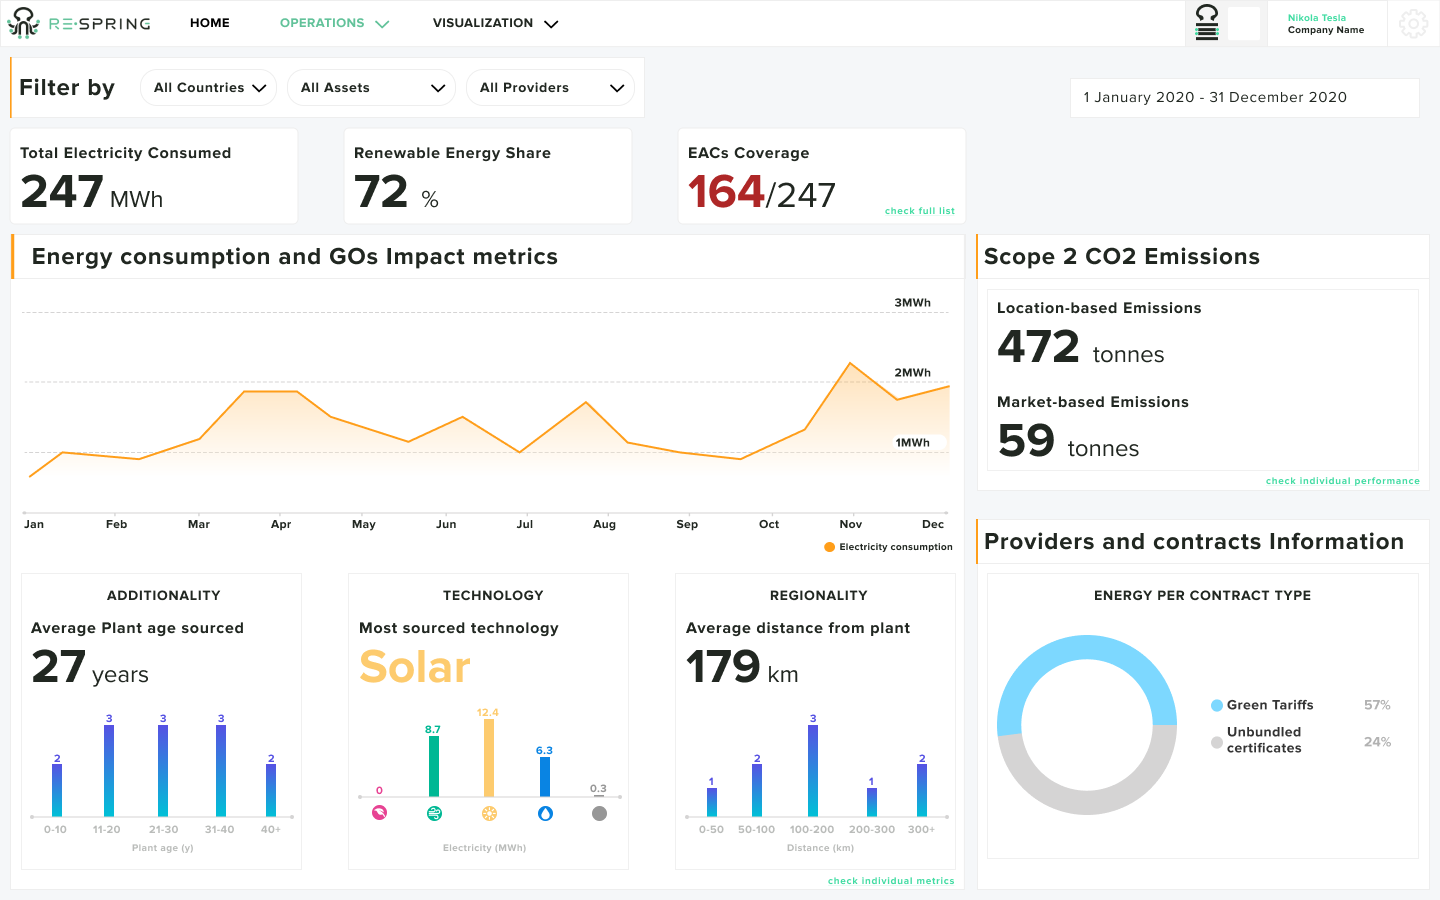 Sustainability dashboard overview